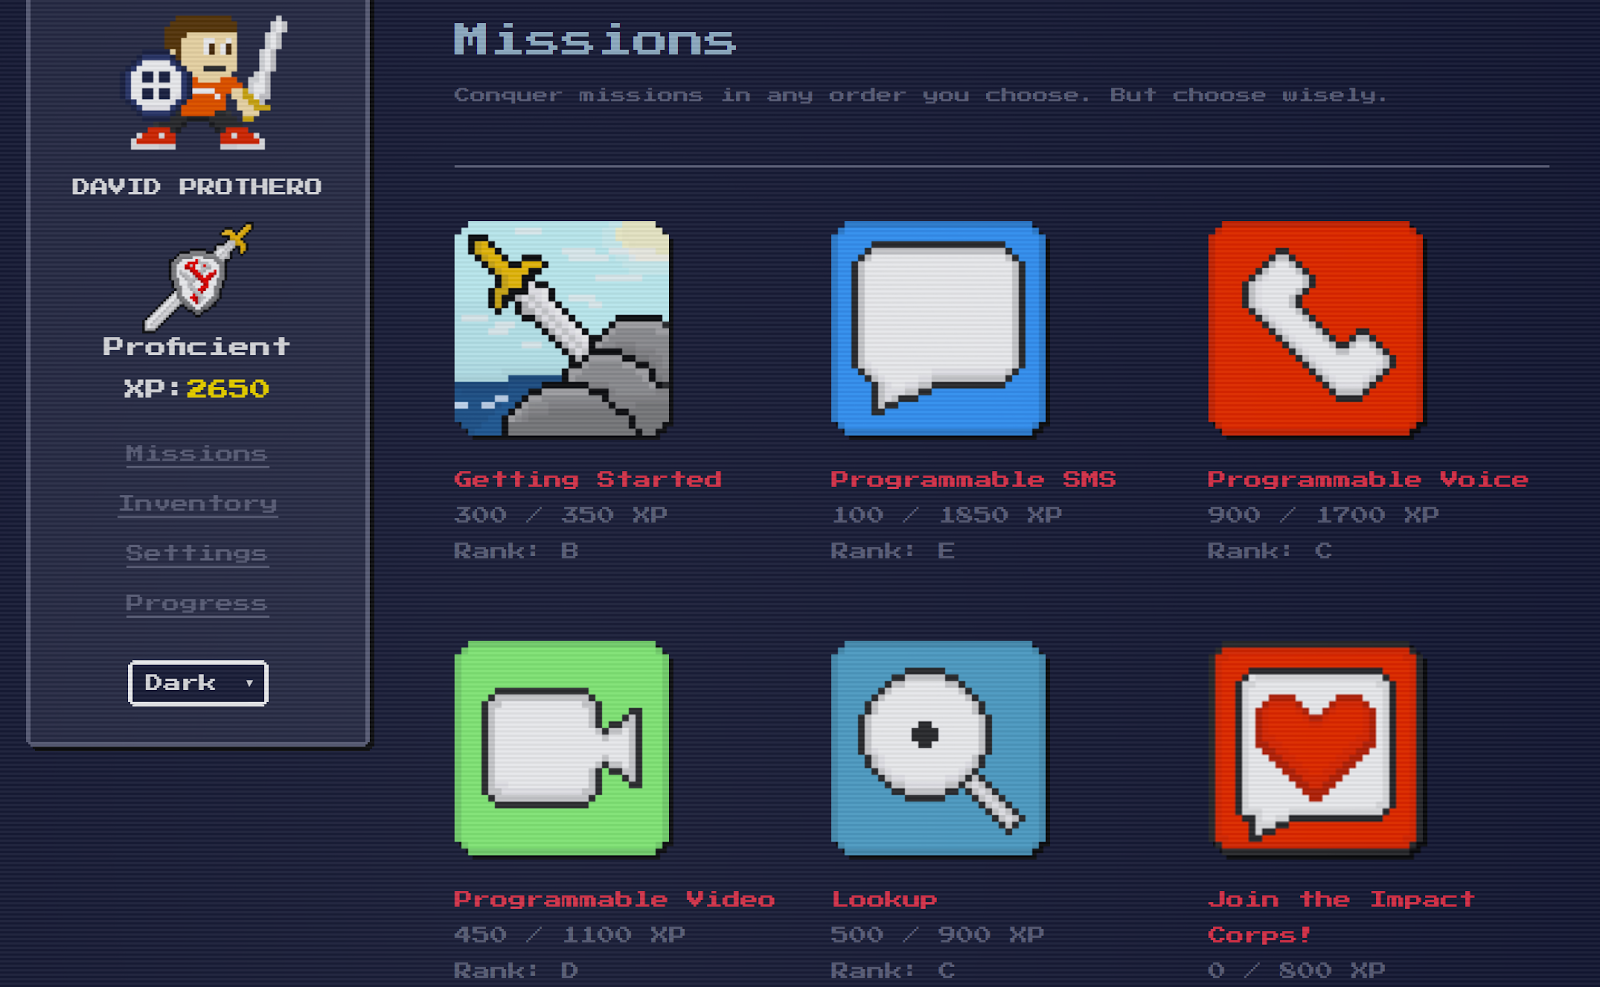 Select TwilioQuest missions to learn communications products quickly.